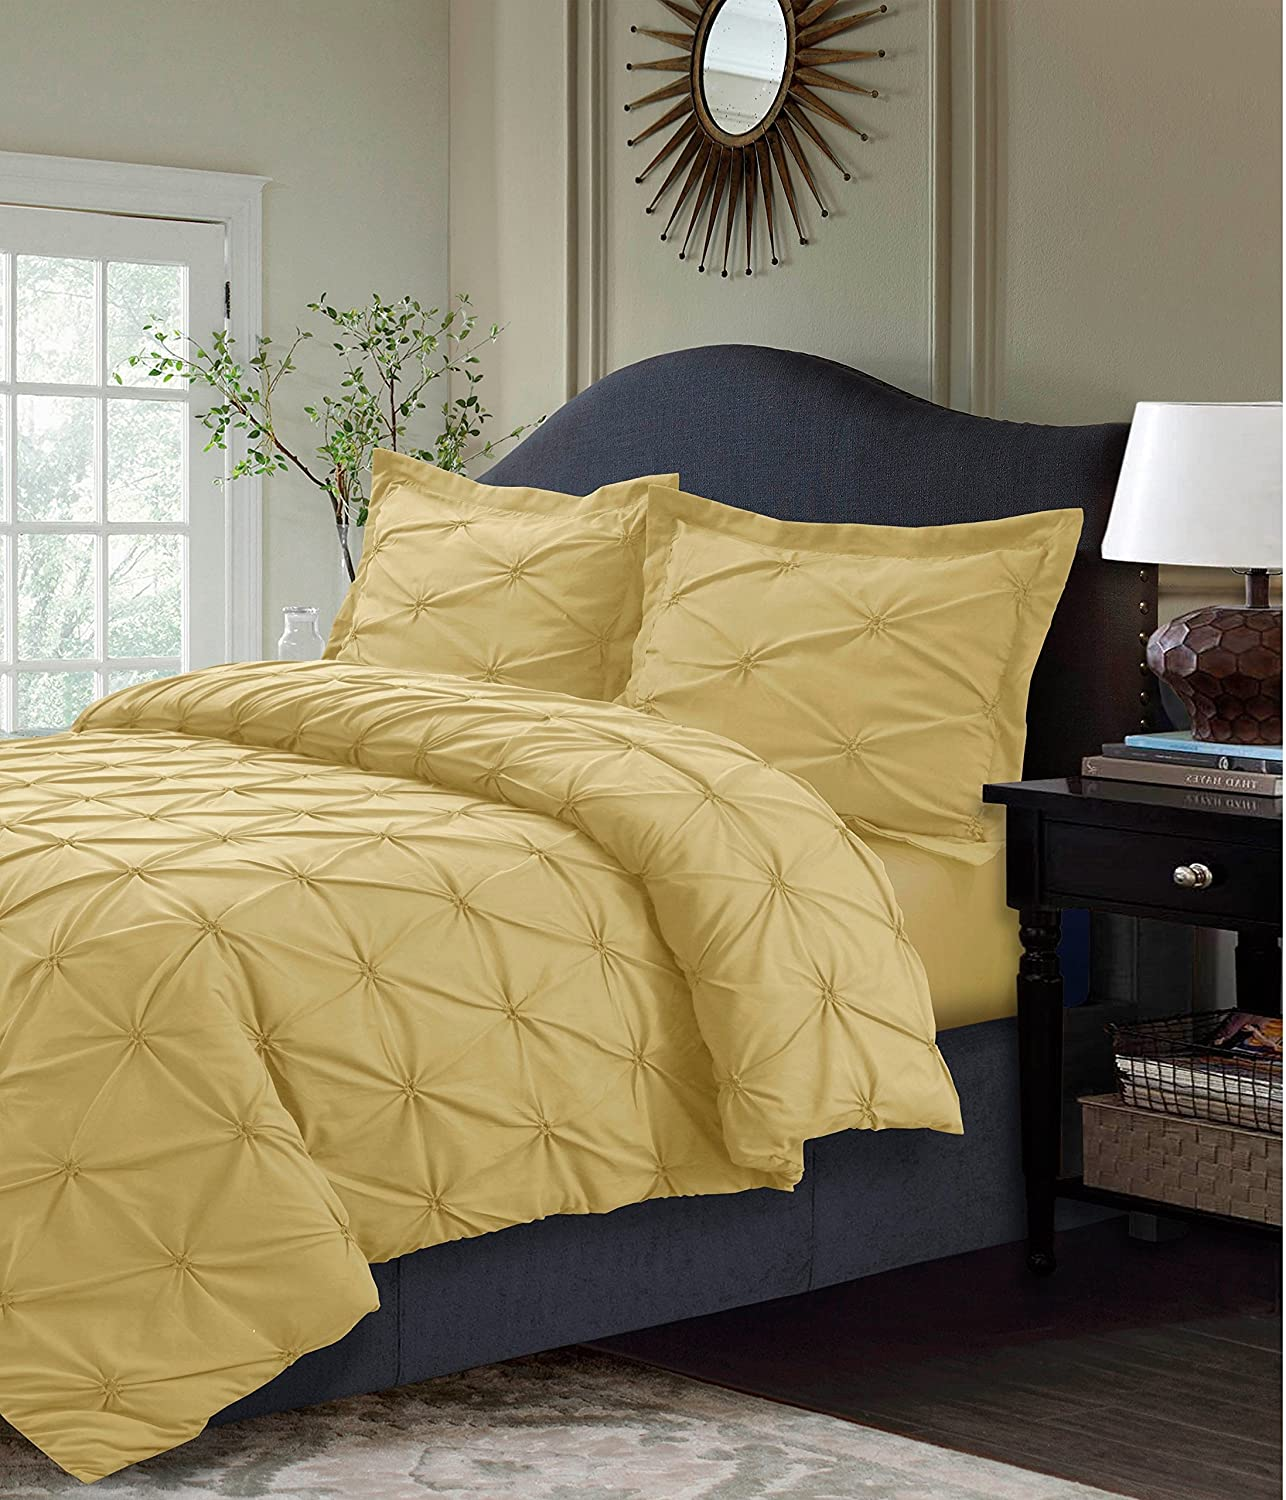 3 Piece Golden Yellow Pinch Pleated Duvet Cover Queen Set